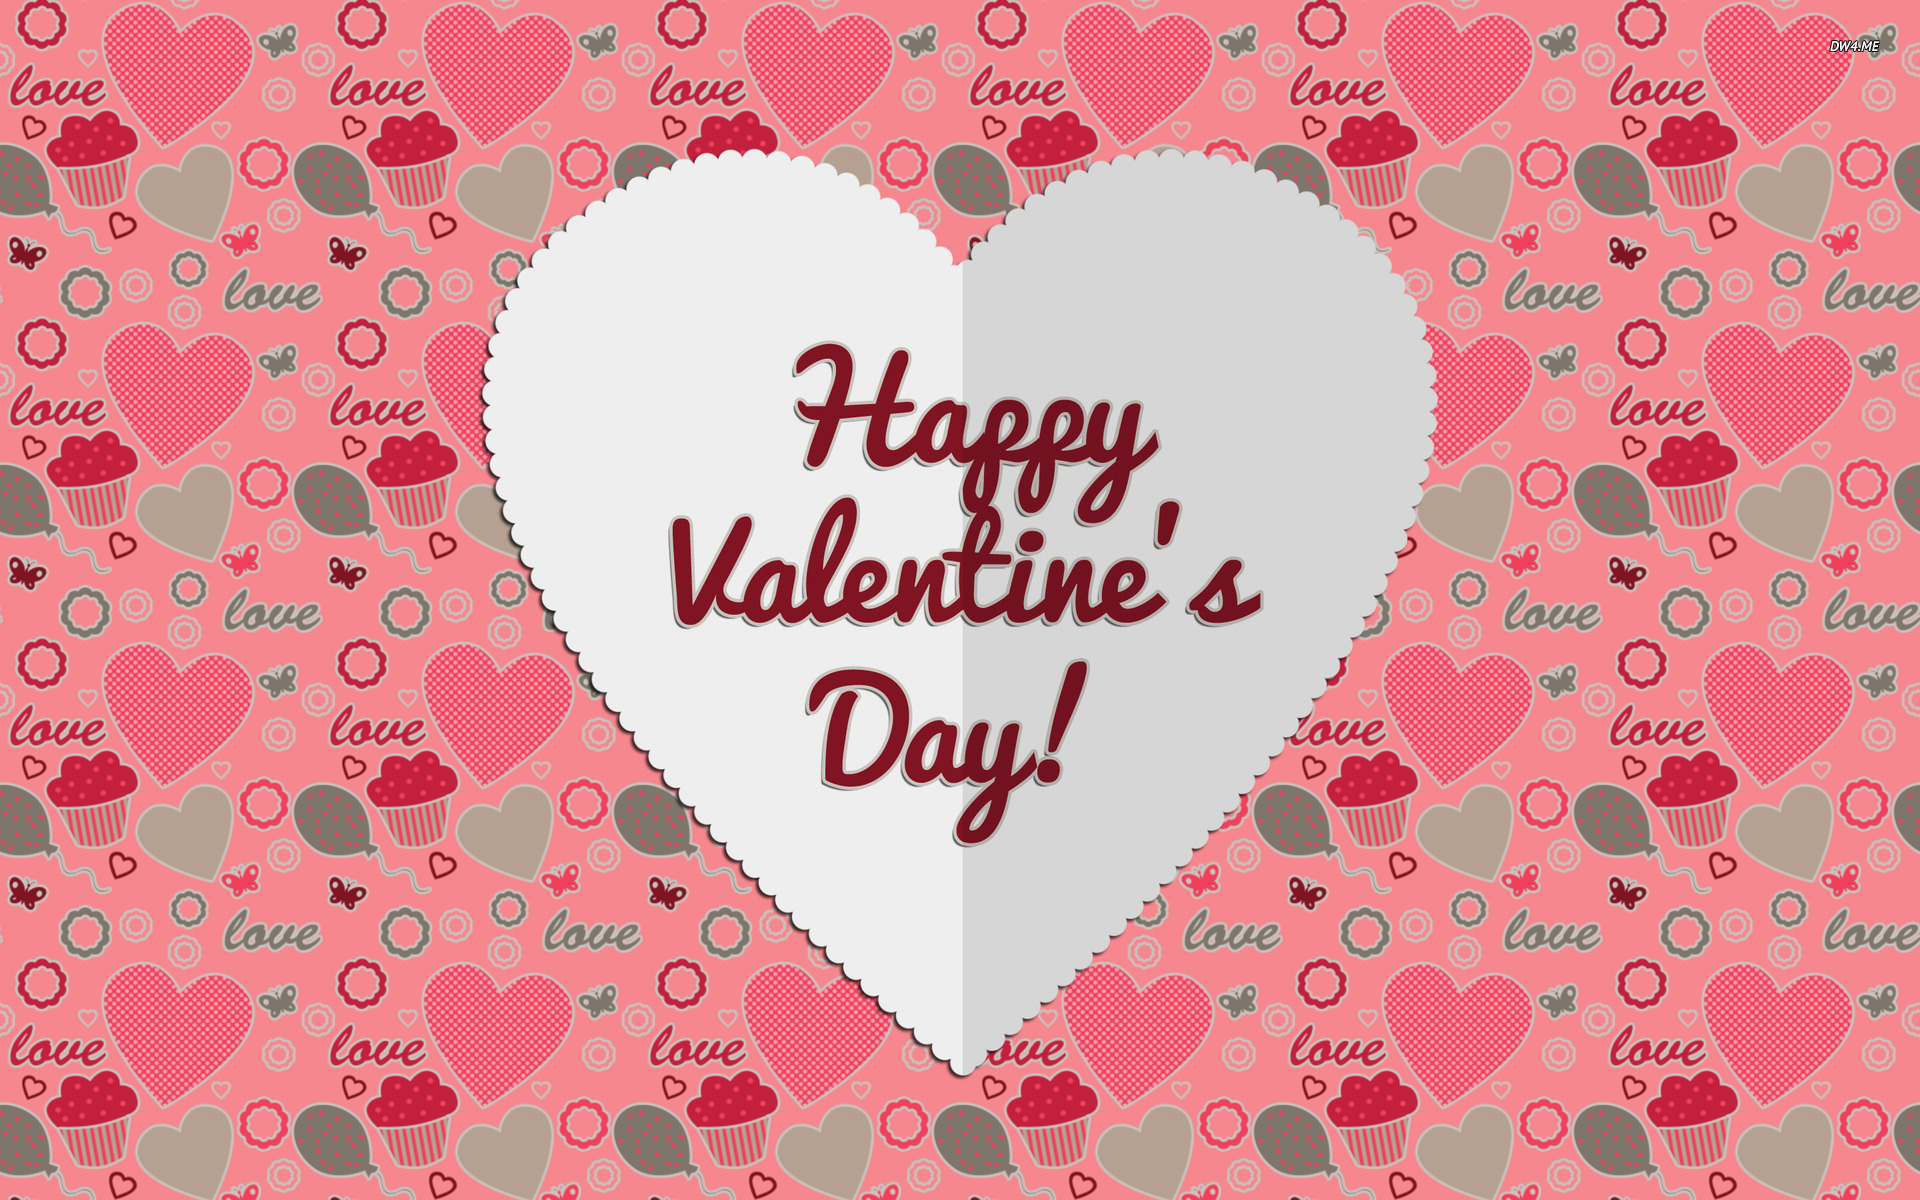 72 Happy Valentines Day Wallpaper Backgrounds On